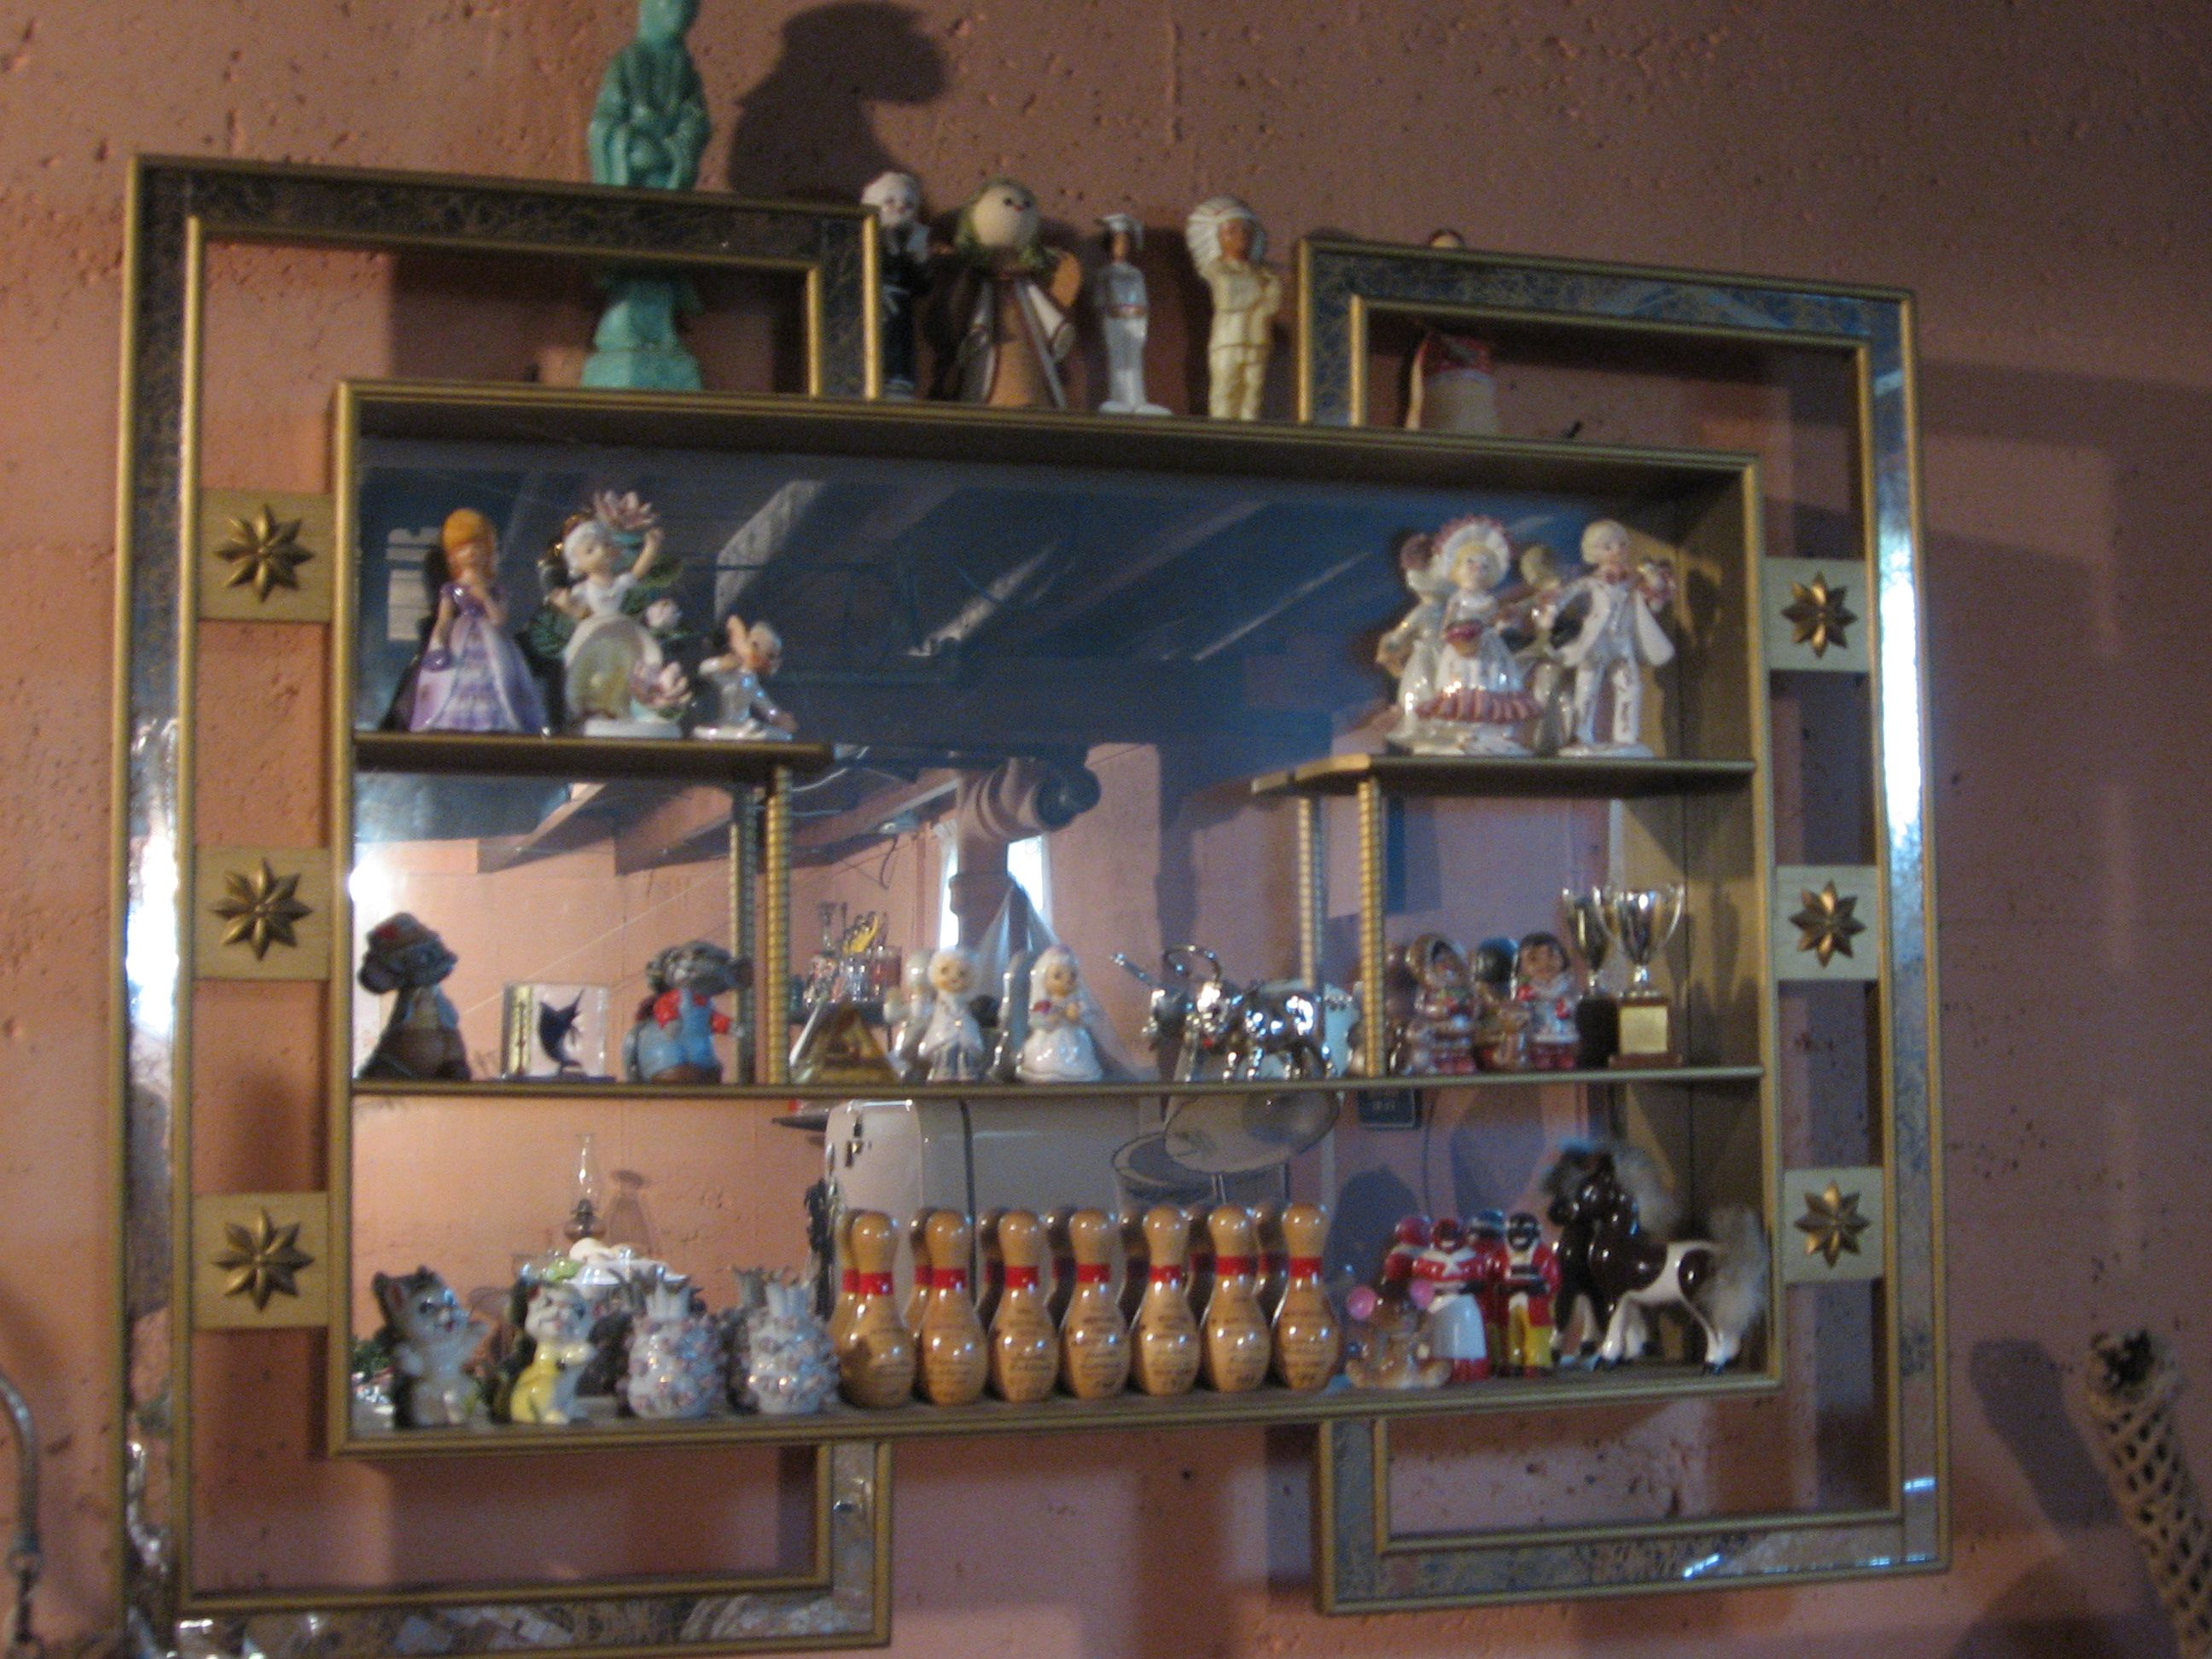 1950 39 s decorative shadow box mirrored knick knack shelf for Mirrored box shelves